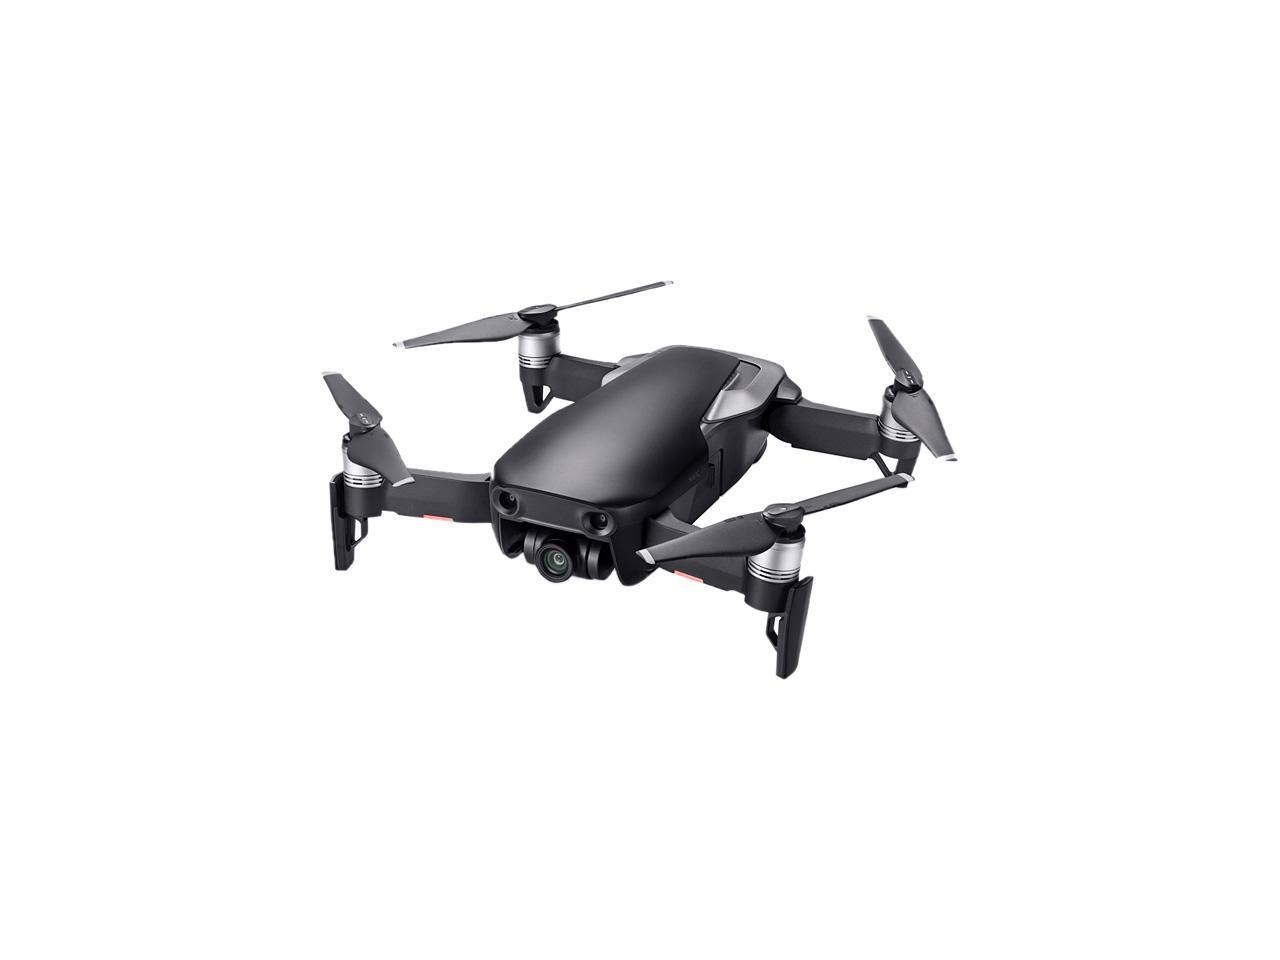 DJI MAVIC AIR Fly More Combo (NA) Portable Collapsible Quadcopter Drone, 3-Axis Gimbal with 4K, 32MP Camera - Onyx Black